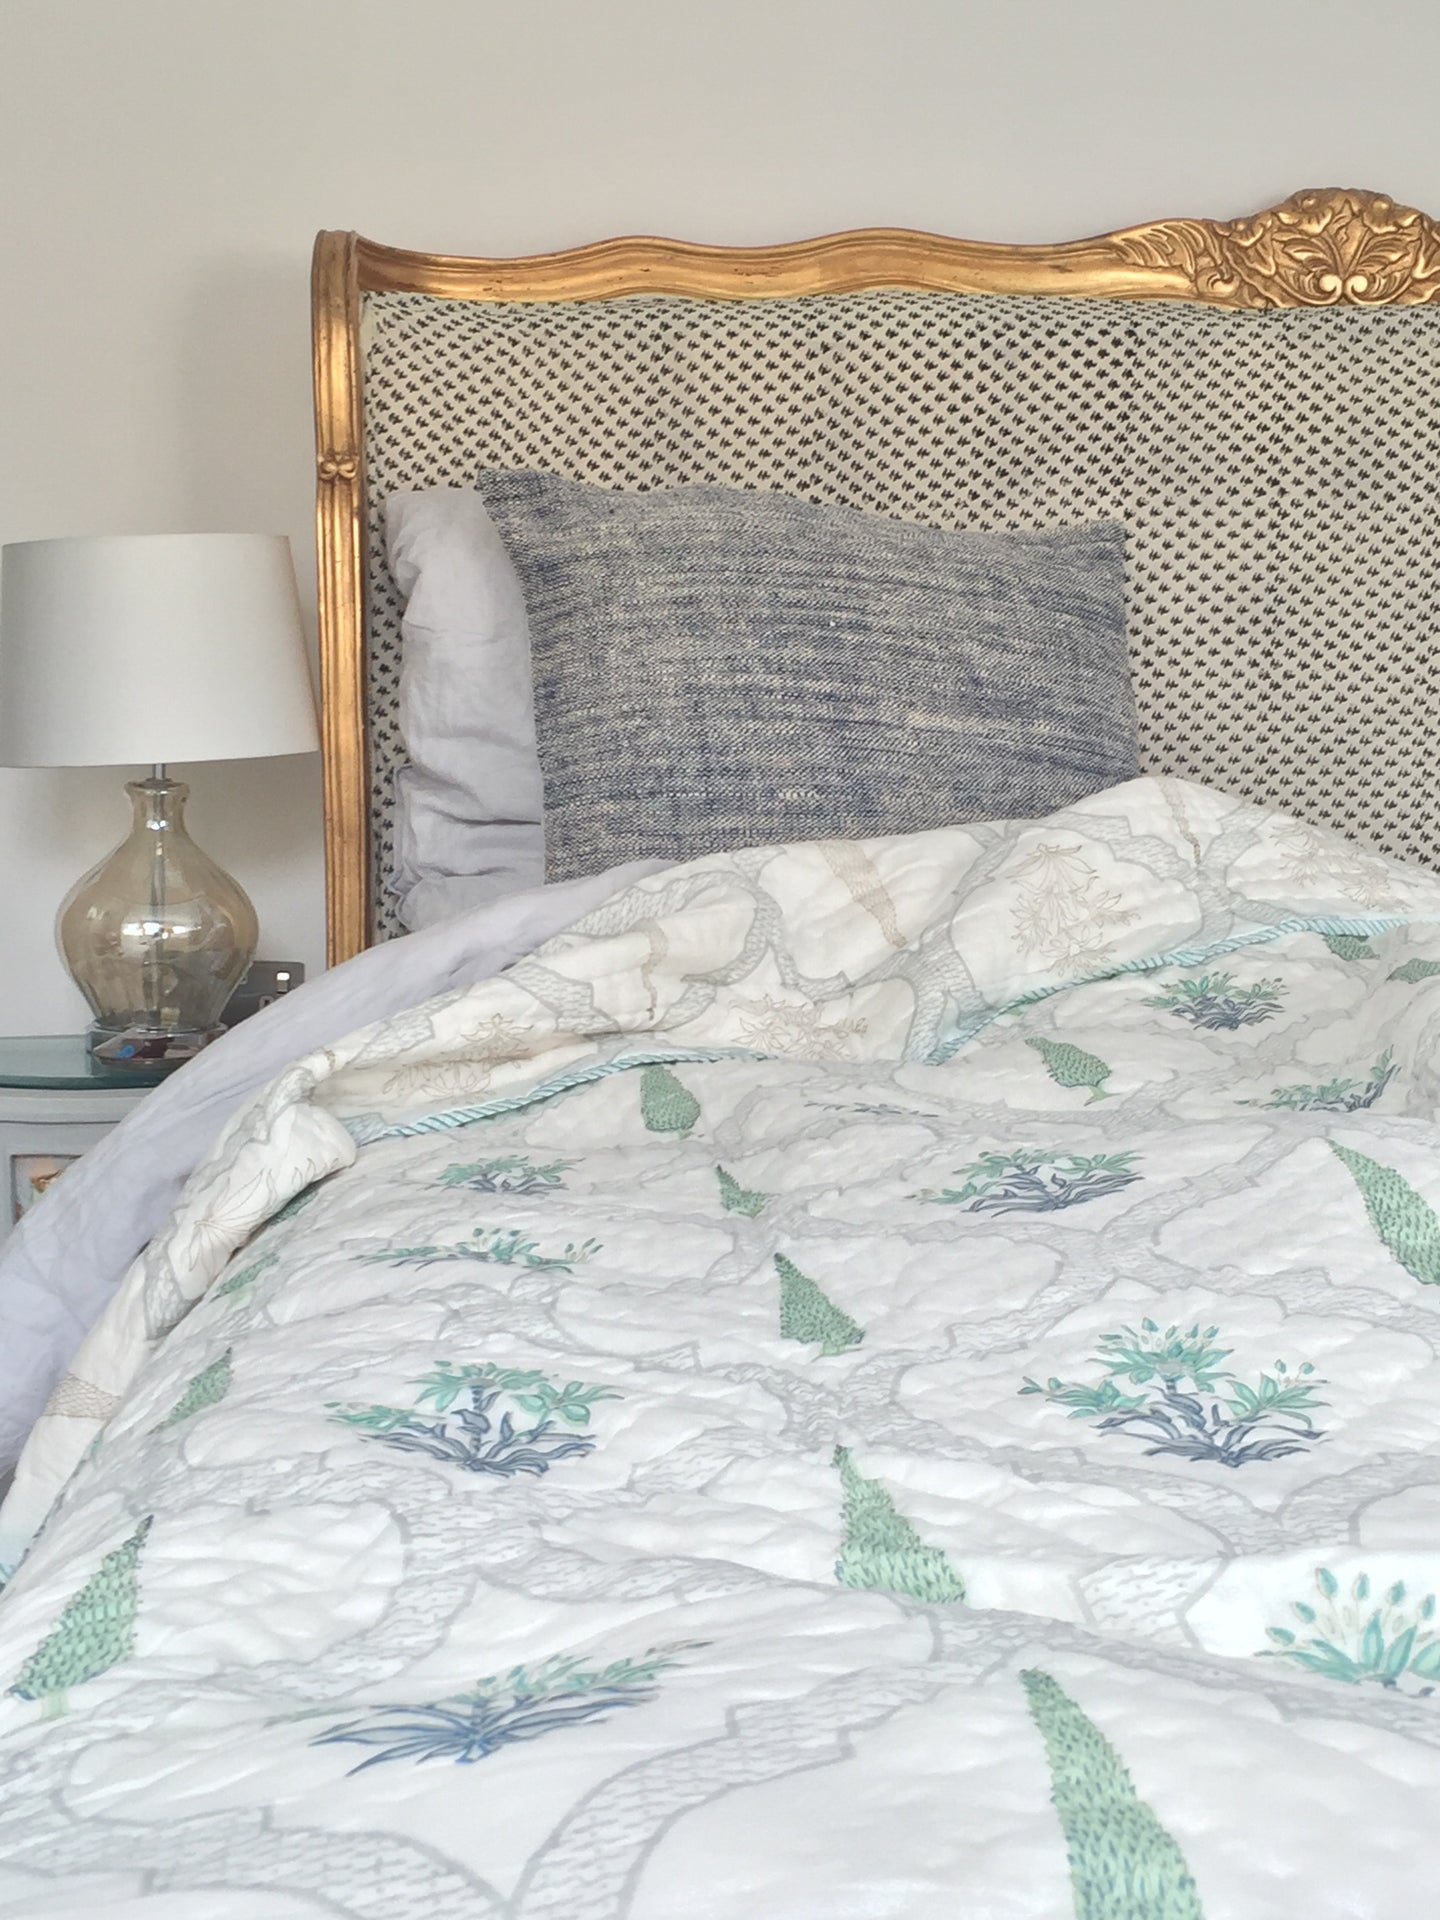 Green Eucalyptus with Jaal Hand Block Printed Blanket